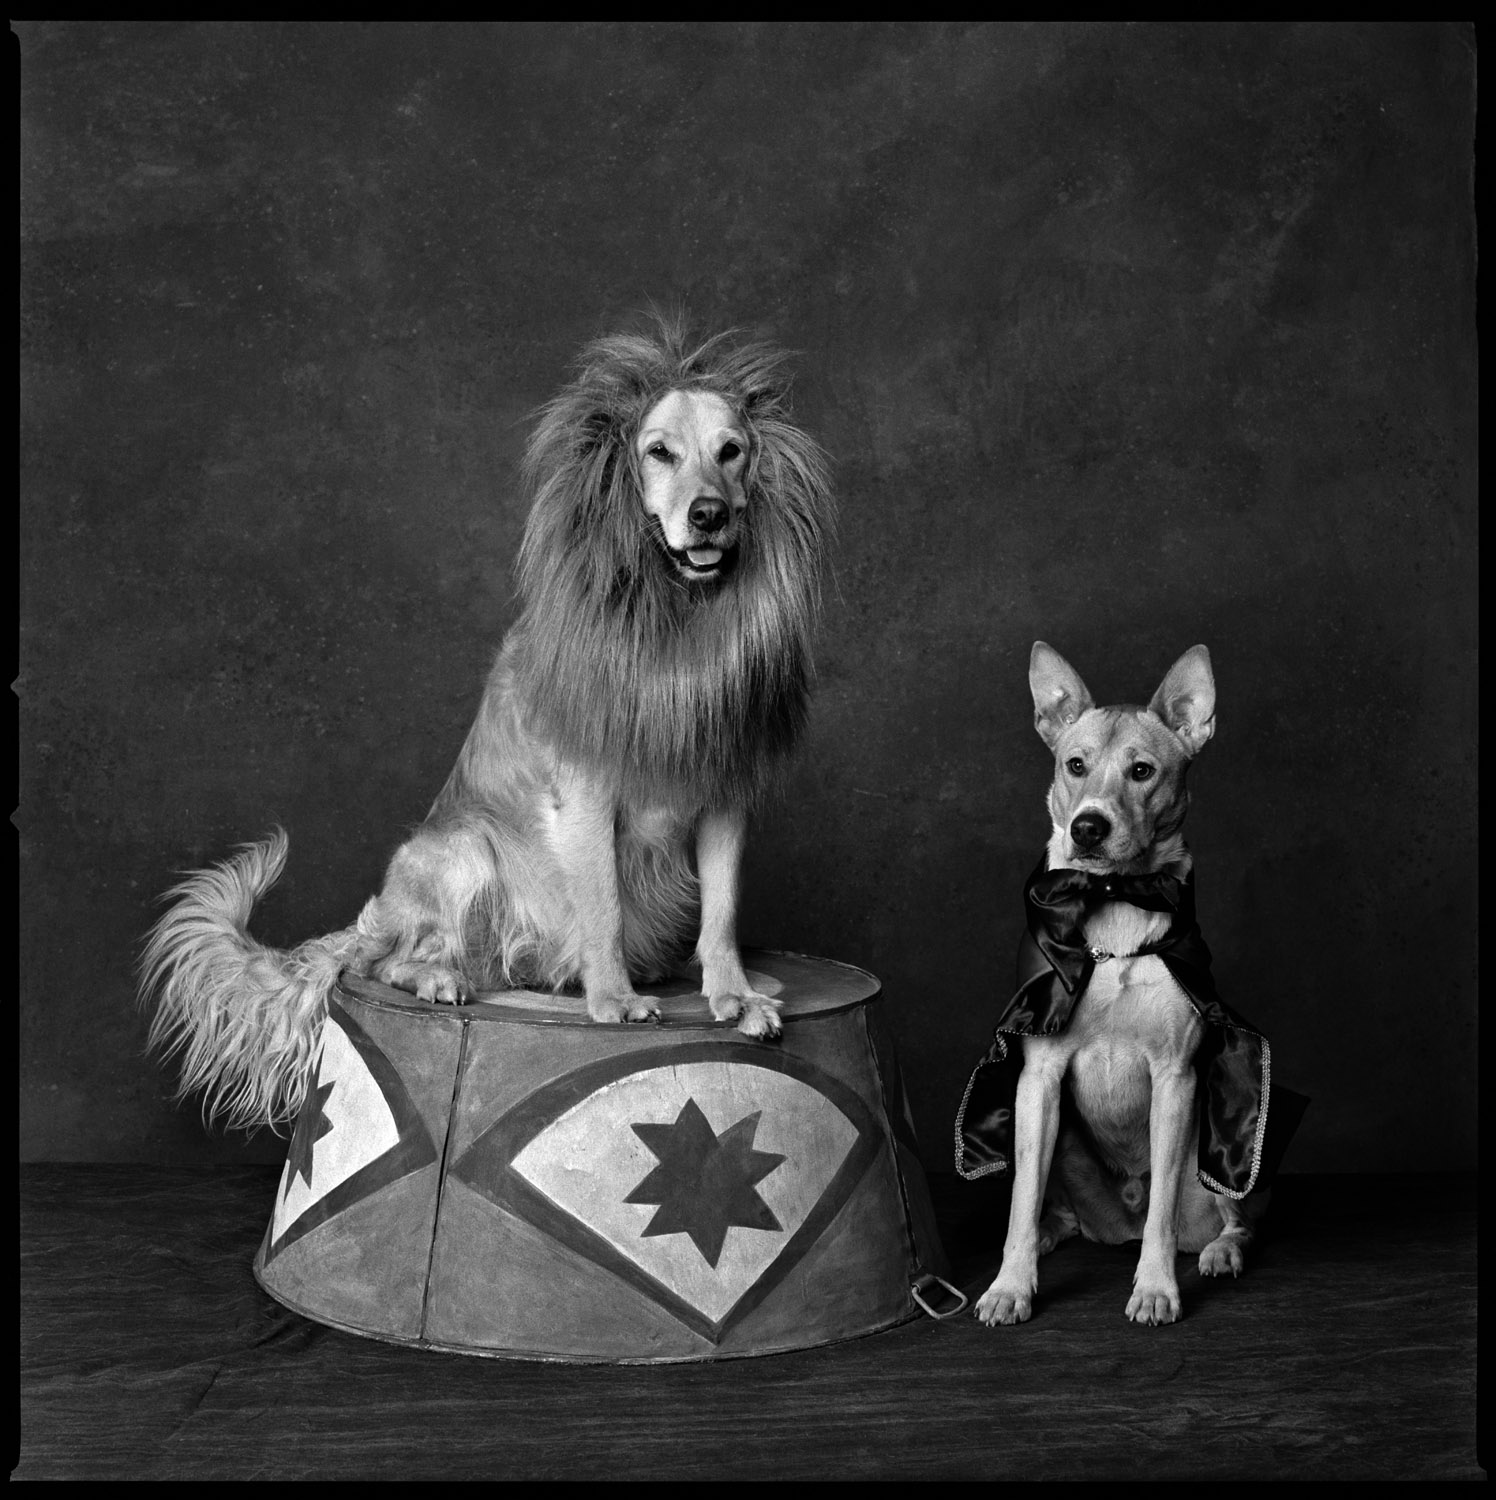 <b>2013: Circus Dogs</b><i>Gracie, a lion, with her trainer, Georgie.</i>